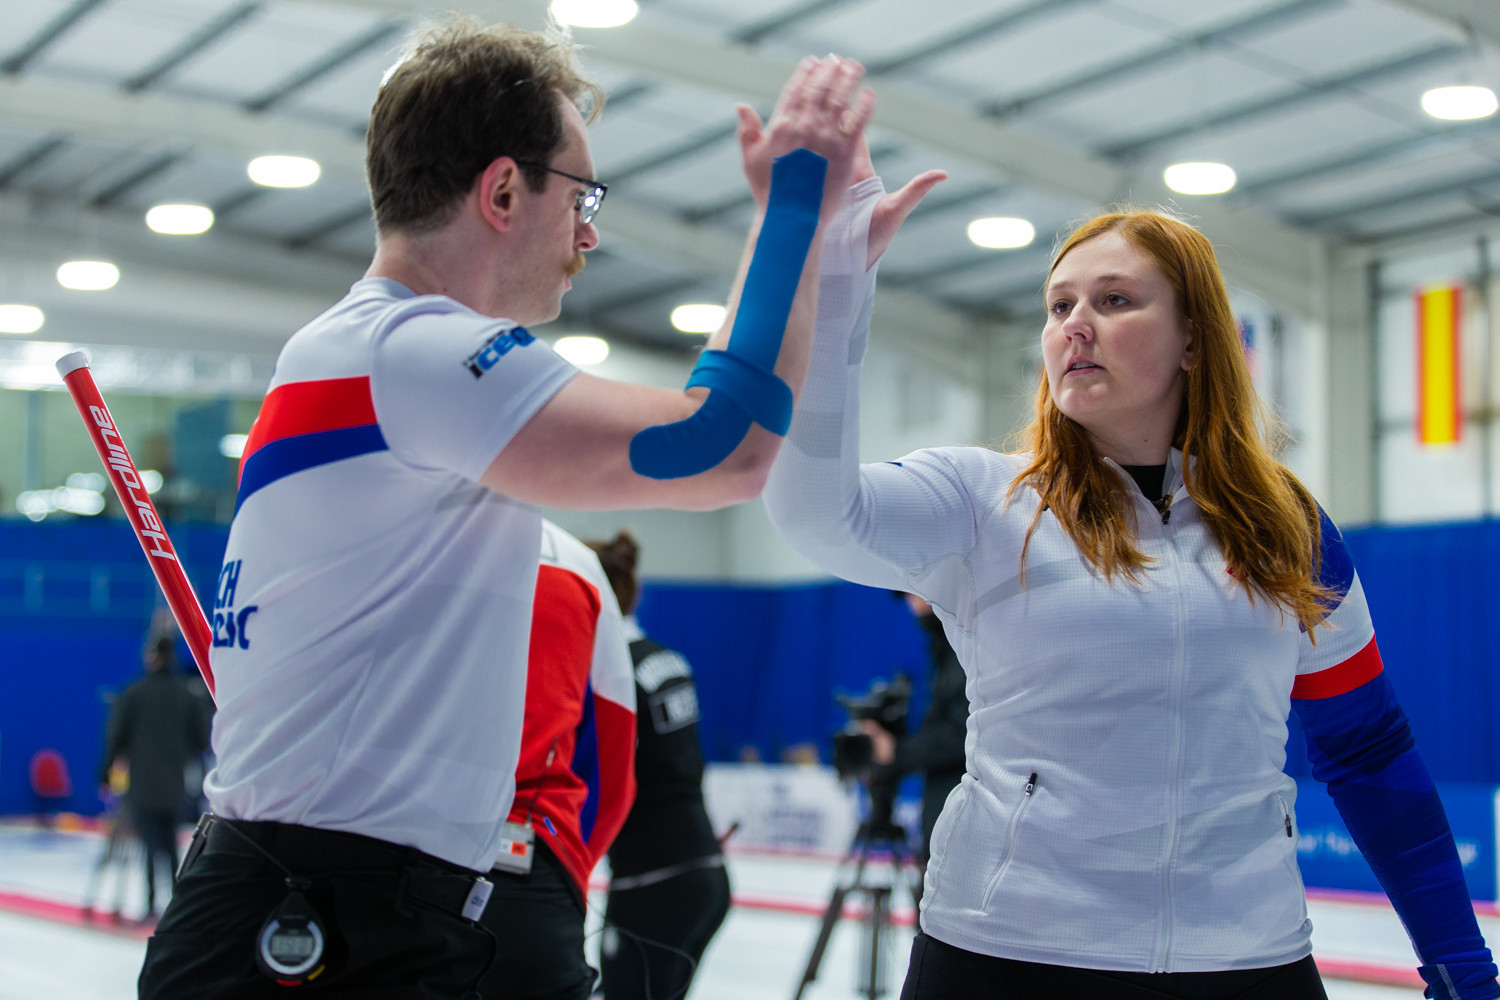 Five teams remain unbeaten following second day at World Mixed Doubles Curling Championship